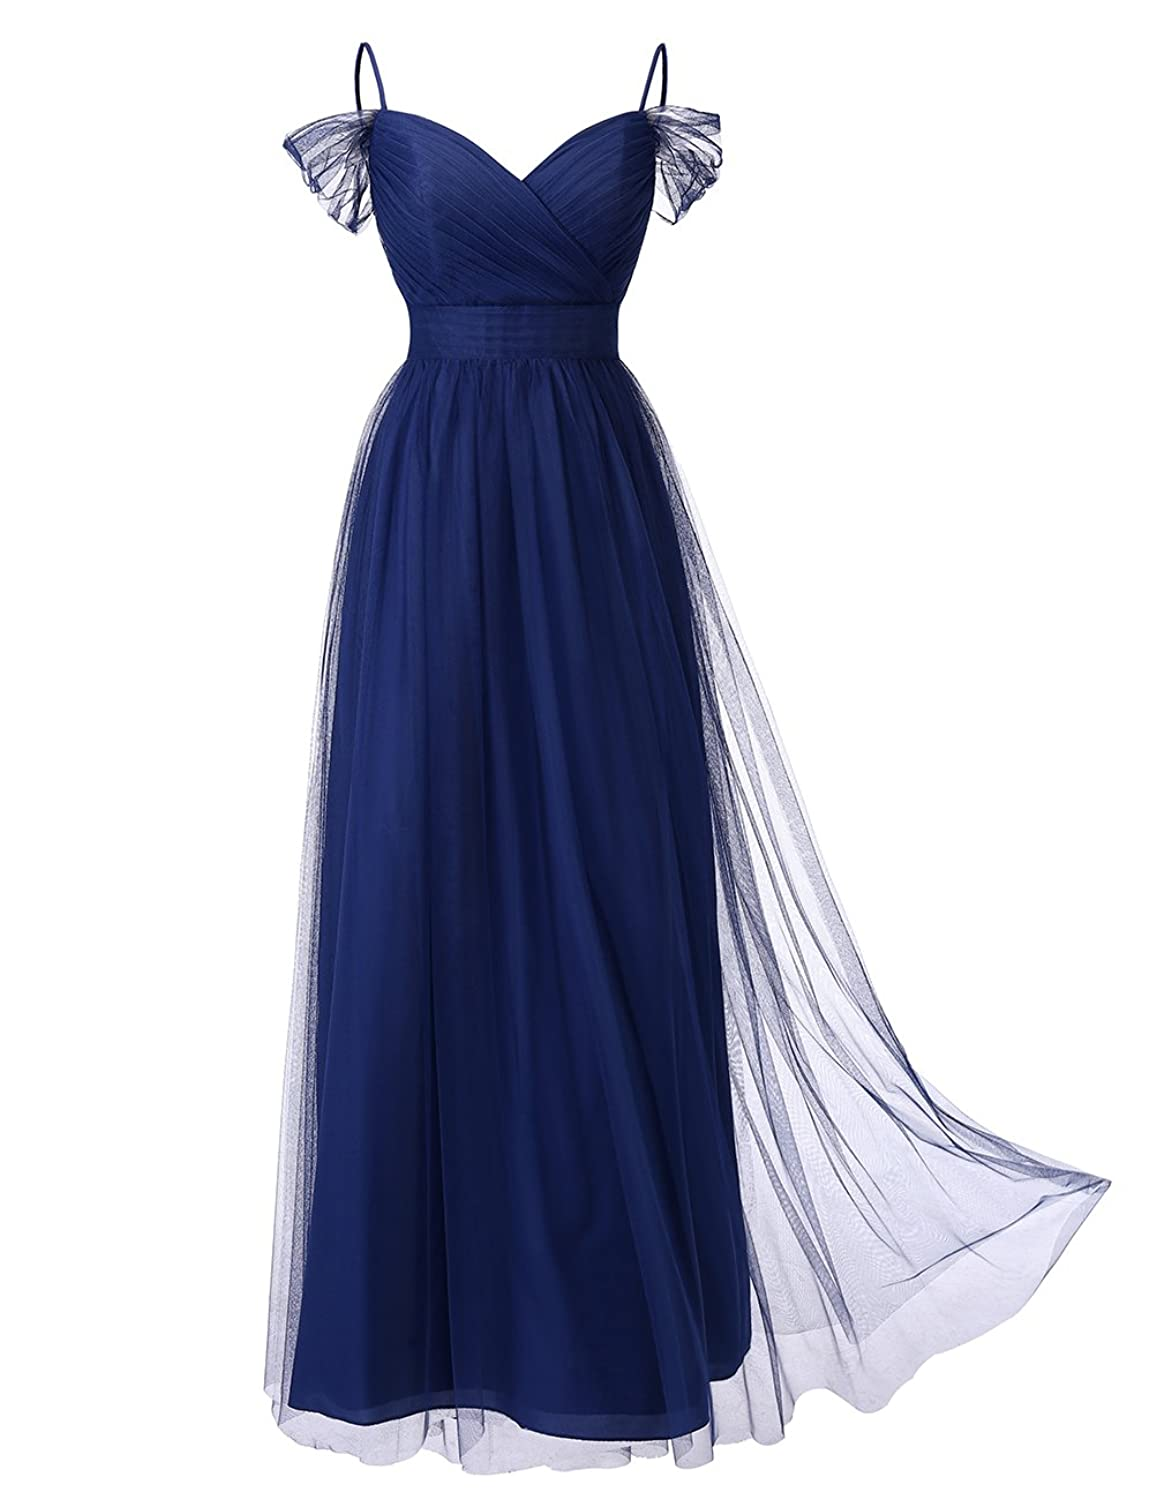 DRESSTELLS Long Prom Dress Tulle Off Shoulder Bridesmaid Dress With Pleat